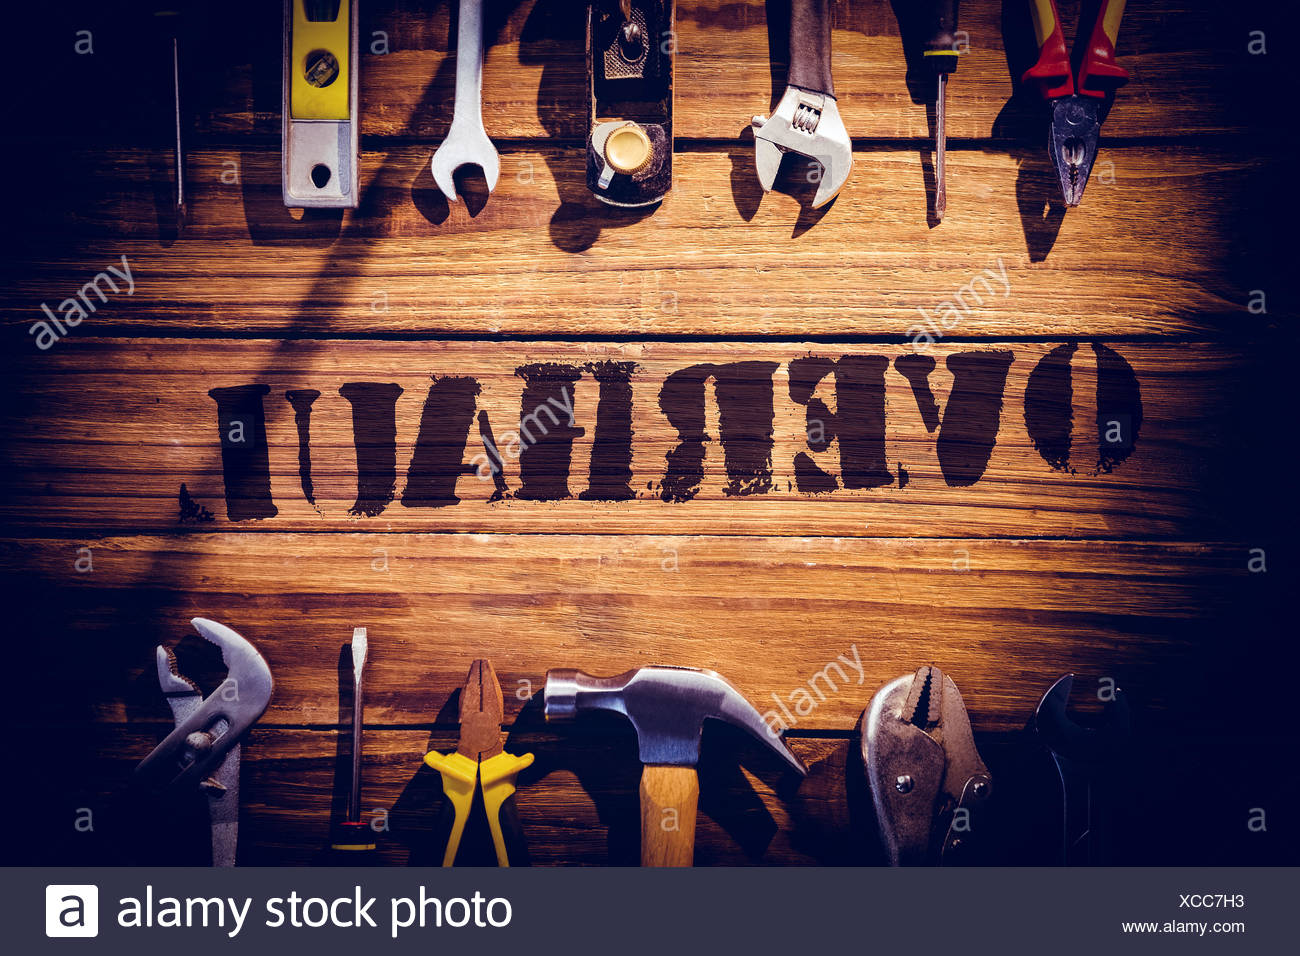 Overhaul against desk with tools Stock Photo